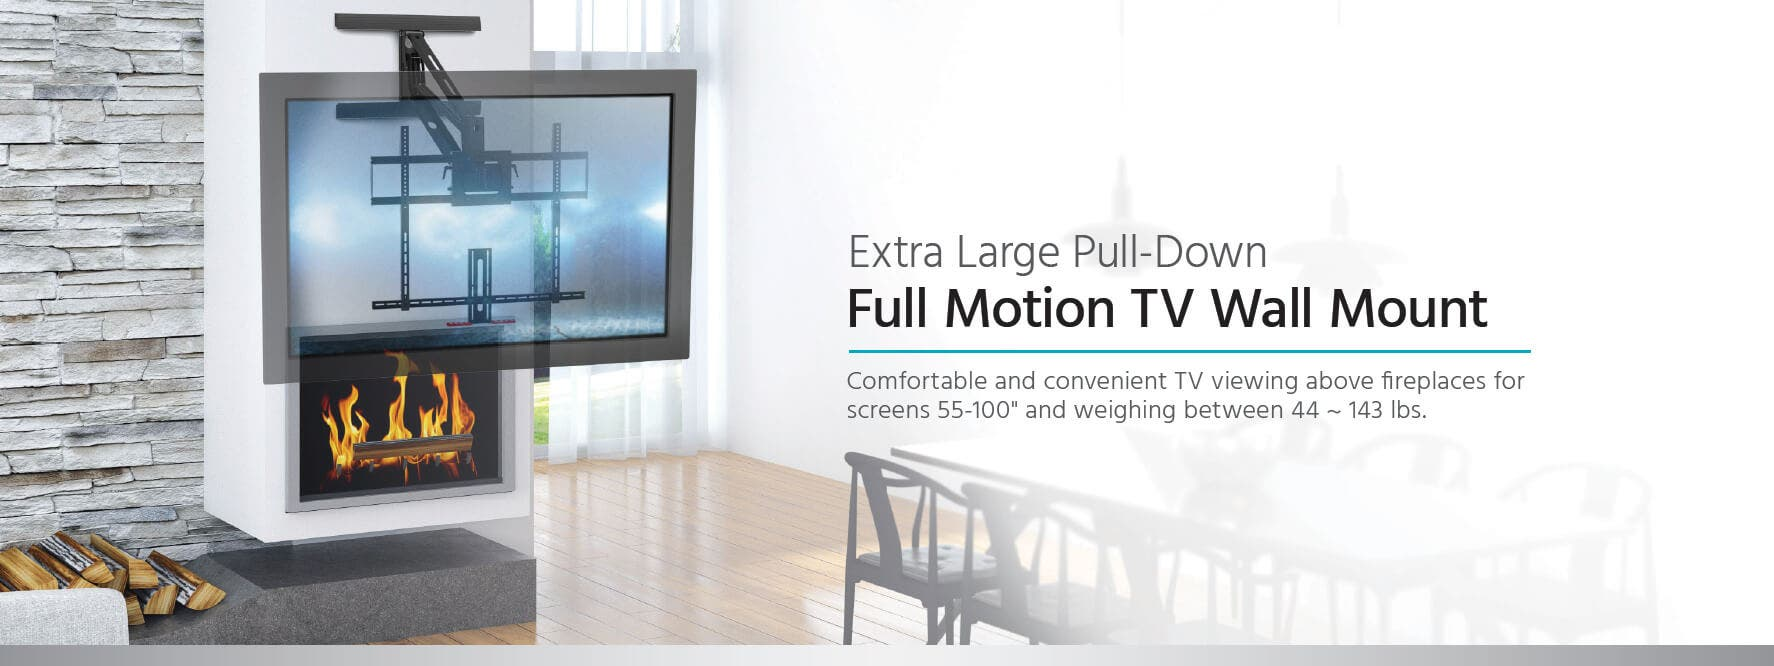 Monoprice Above Fireplace Pull Down Full Motion